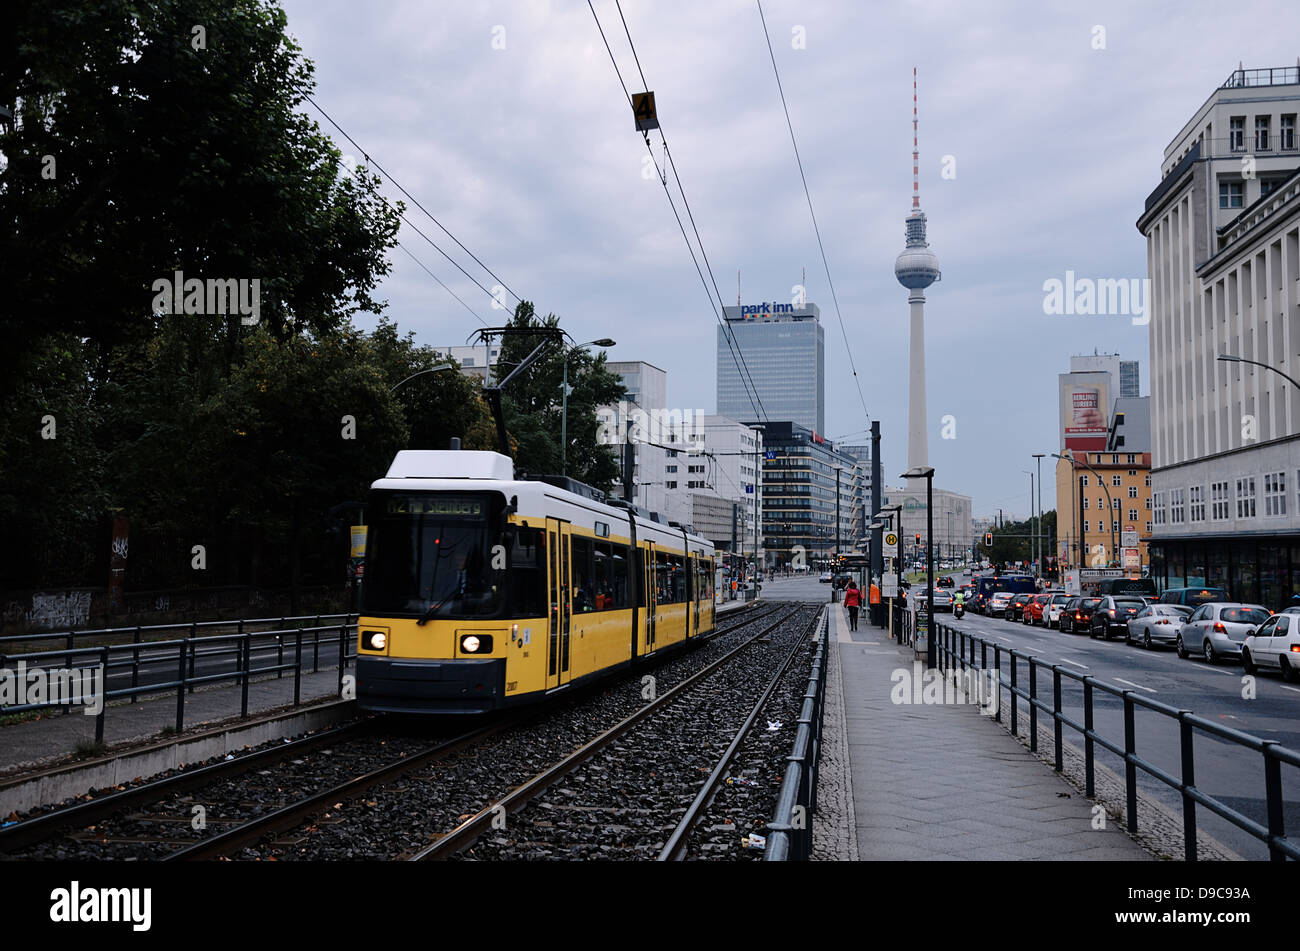 A tram station in Berlin. Germany - Stock Image